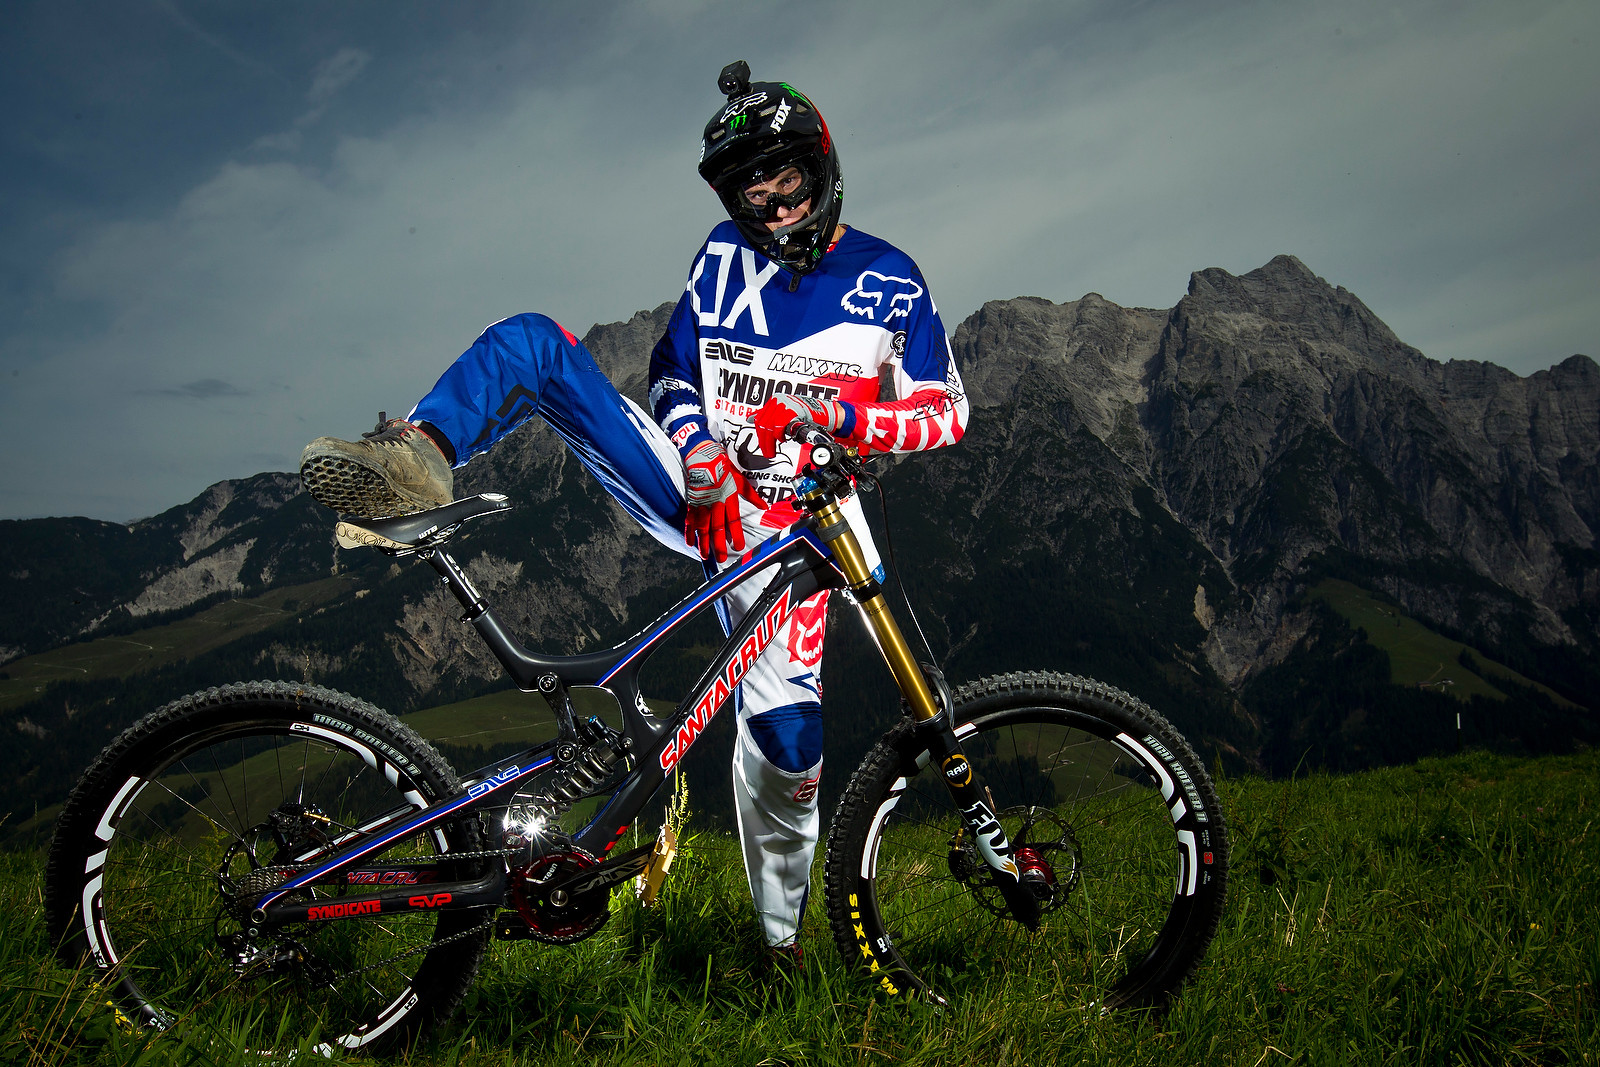 Josh Bryceland Getting a Leg Up - World Championships Riders and Bikes - Mountain Biking Pictures - Vital MTB